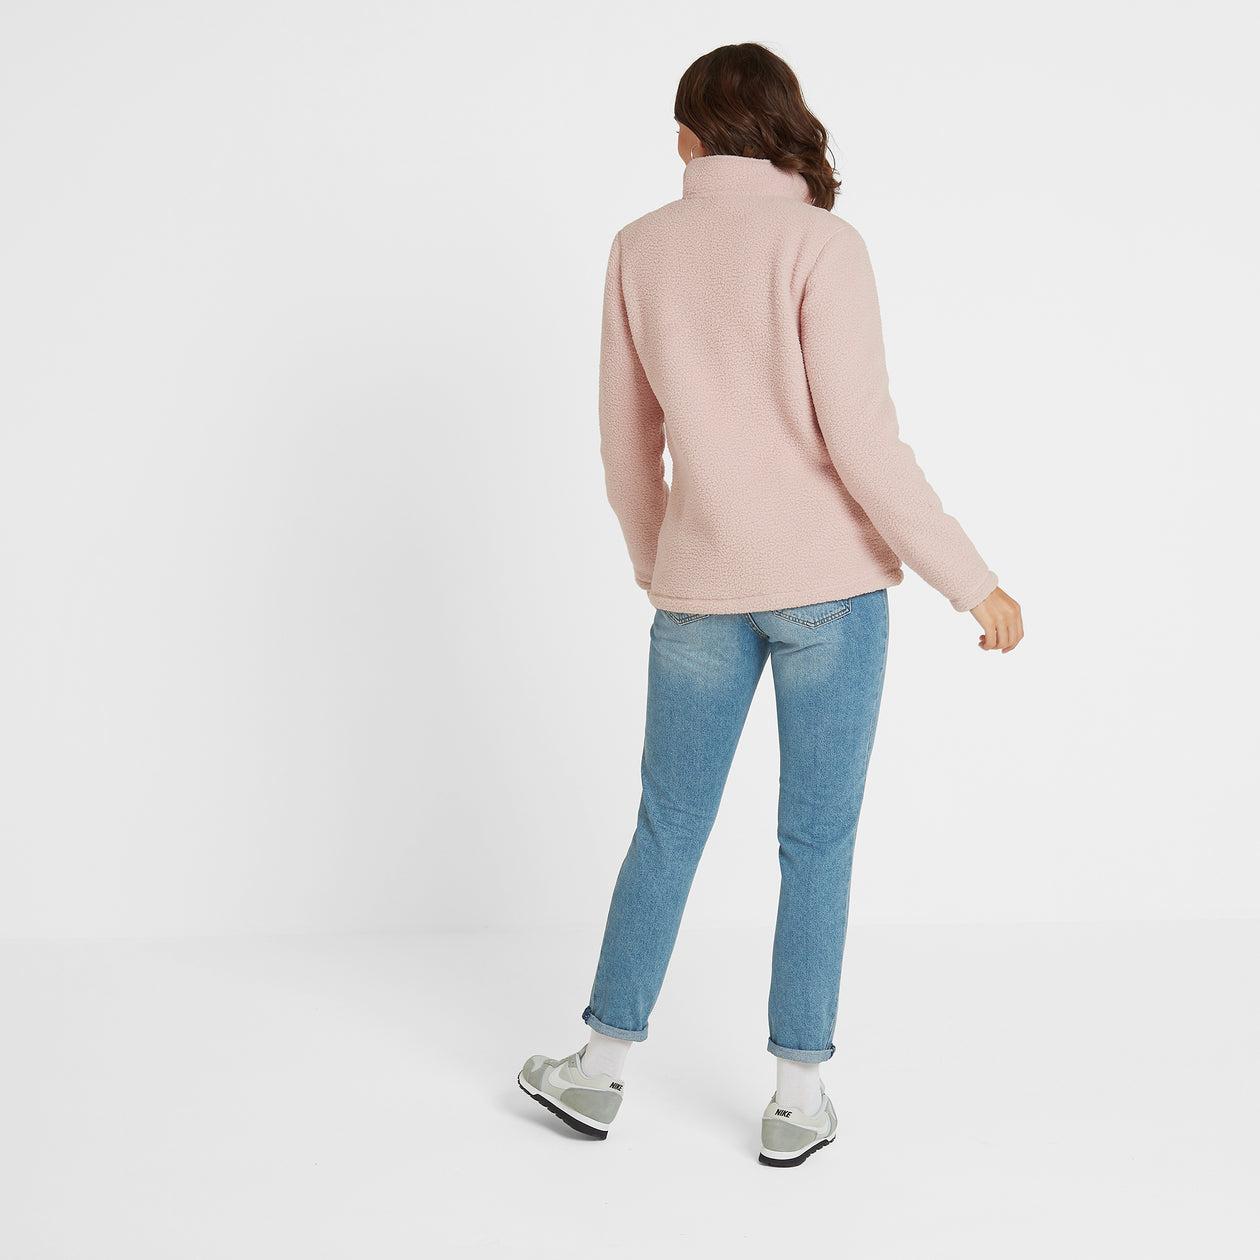 Kirkstall Womens Fleece Zip Neck - Rose Pink image 4